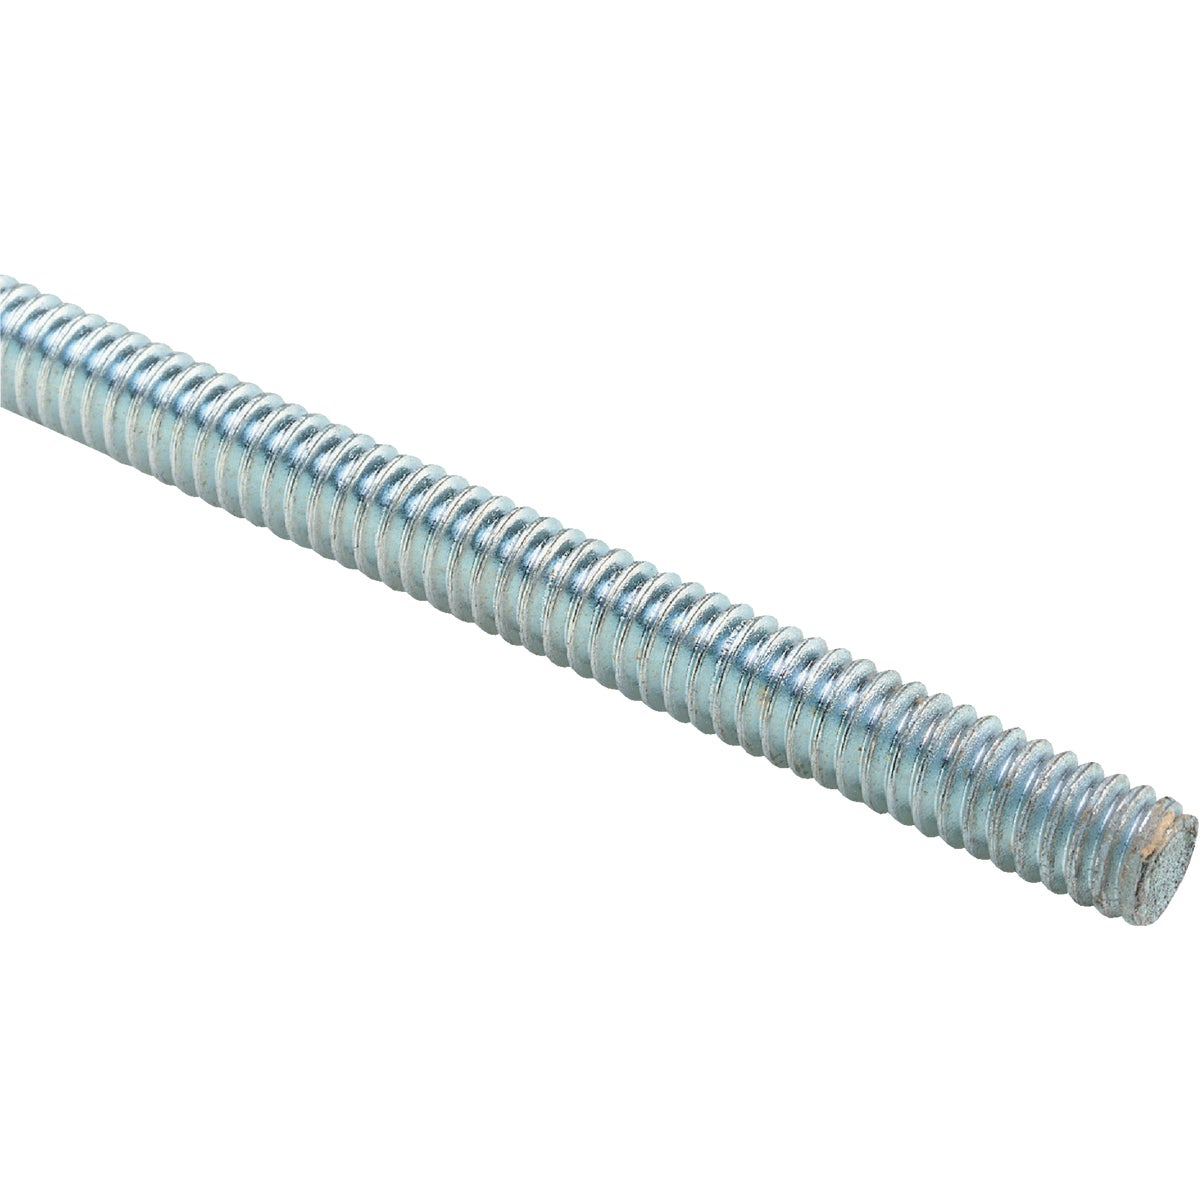 "3/8X16""X10' ROD - ZR1038 by Thomas & Betts"